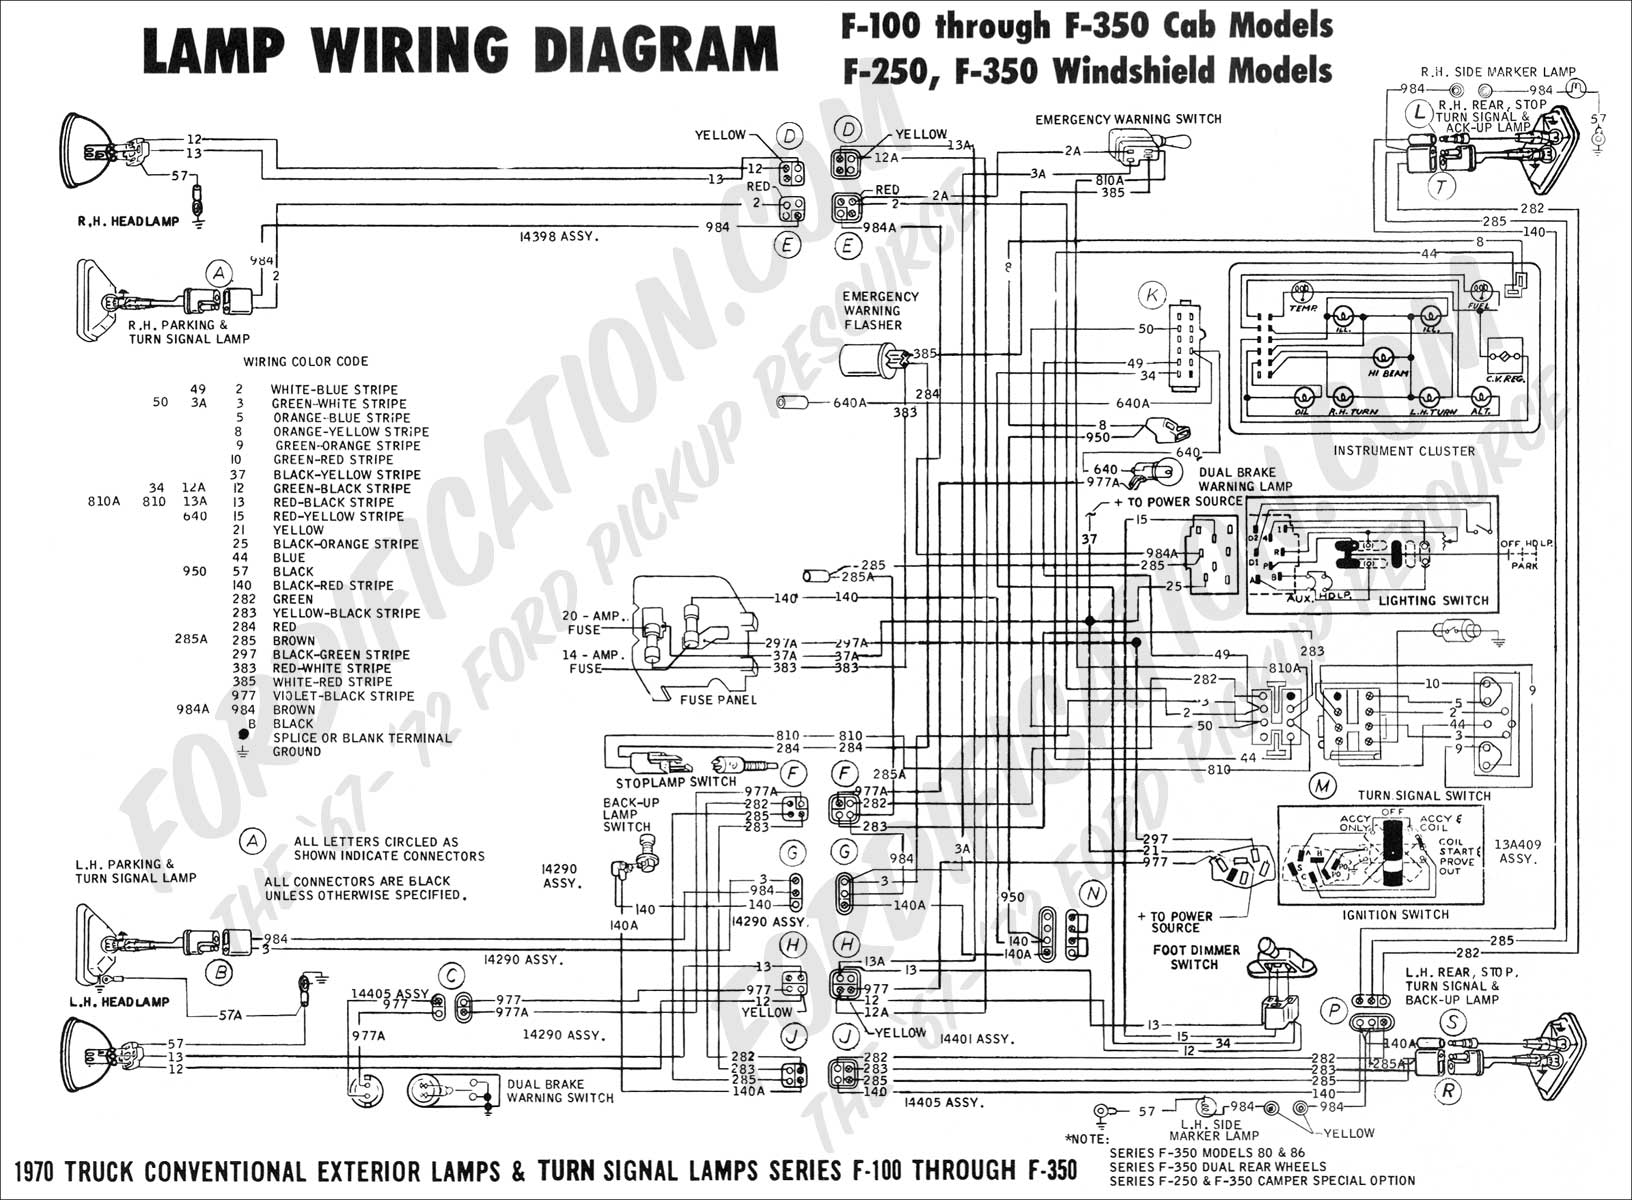 82 Chevy Truck S10 Engine Wiring Diagram additionally T1840397 Wiring diagram electric start dtr 125 additionally 1989 GSXR1100 Wiring Diagram besides 981674 Steering Collum in addition Ford F 100 Through F 750 Trucks 1964. on ford f 250 steering column wiring diagram